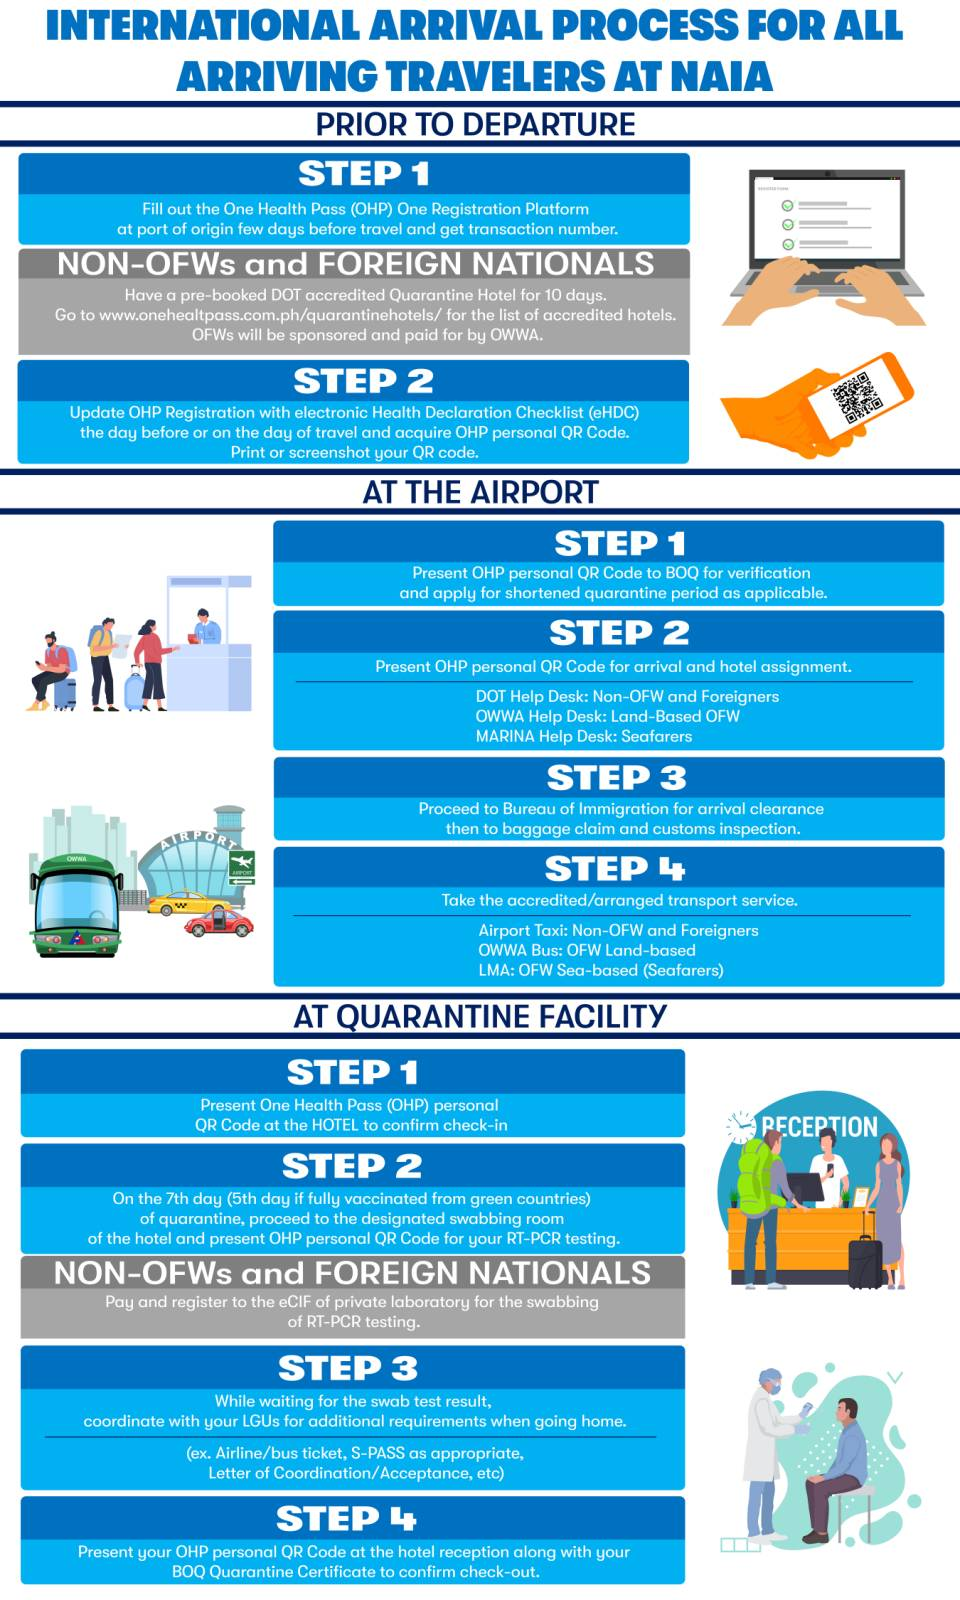 International Arrival Process for All Arriving Travelers at NAIA Airport